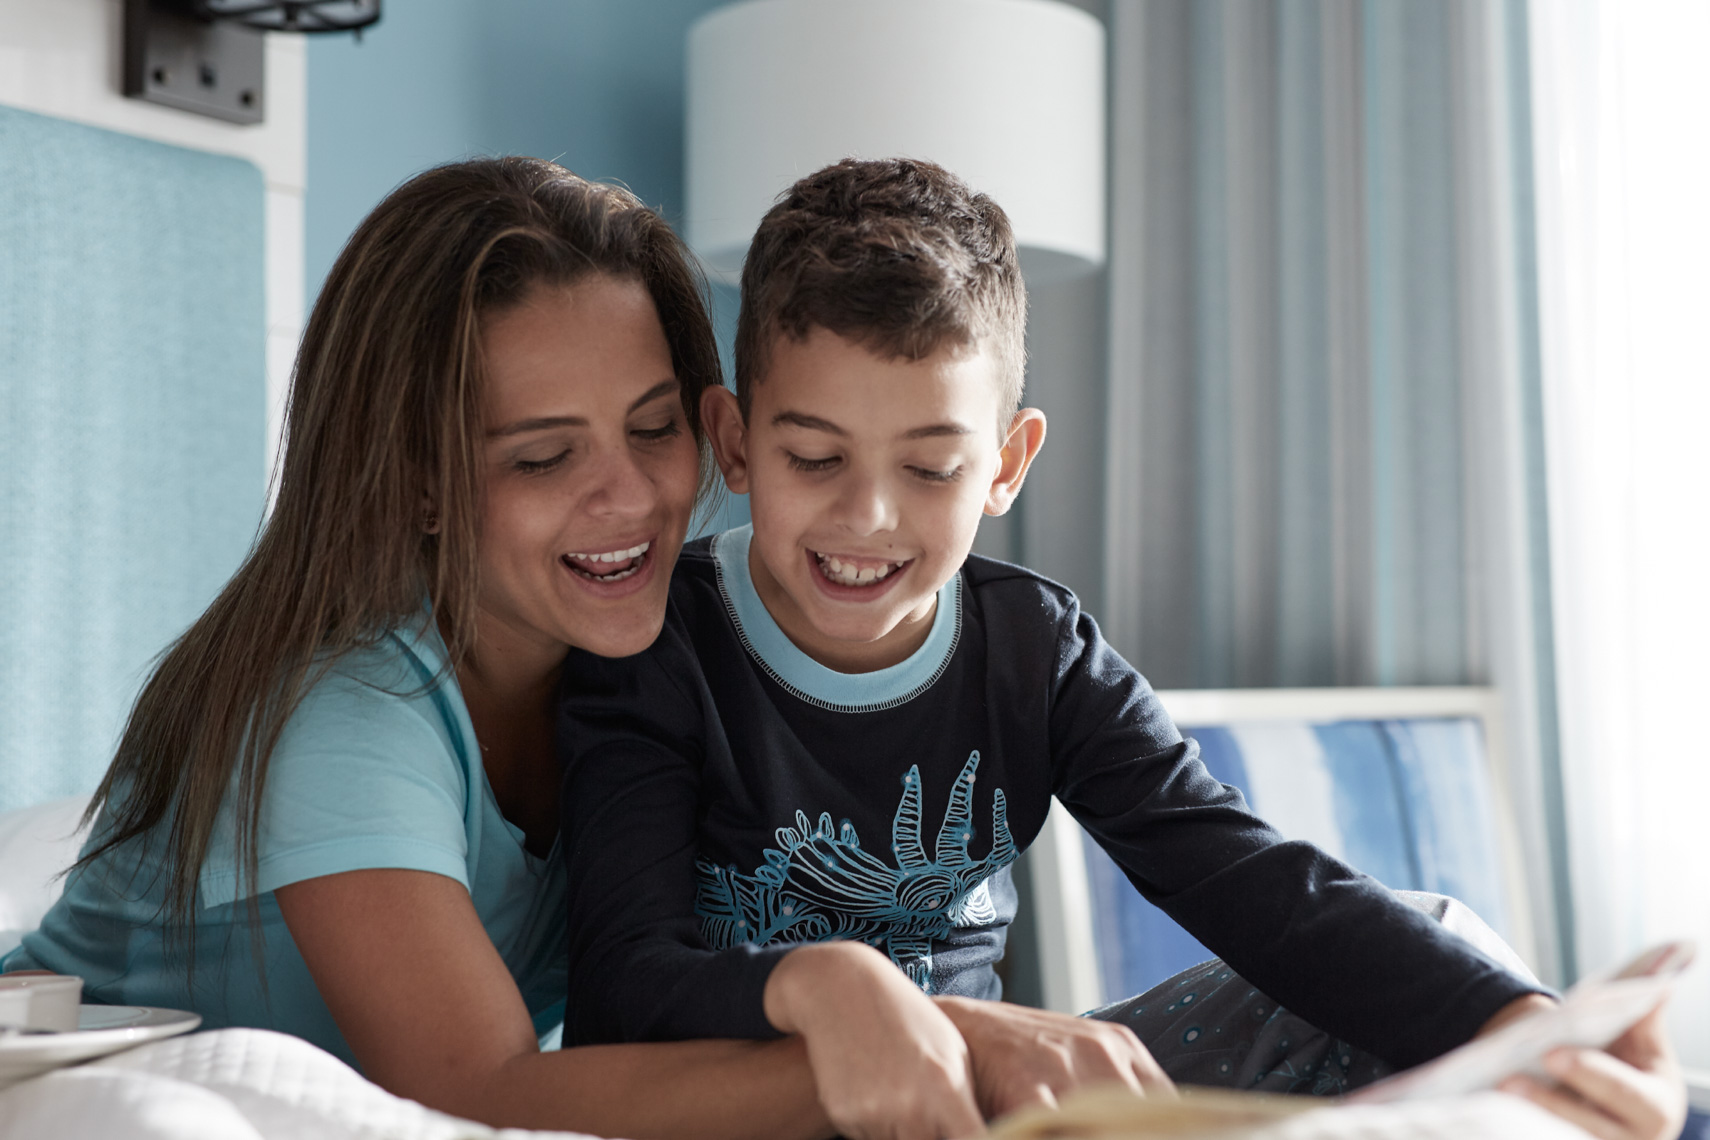 Mother and child laughing and looking at  a resort map in blue hotel room San Francisco lifestyle photographer